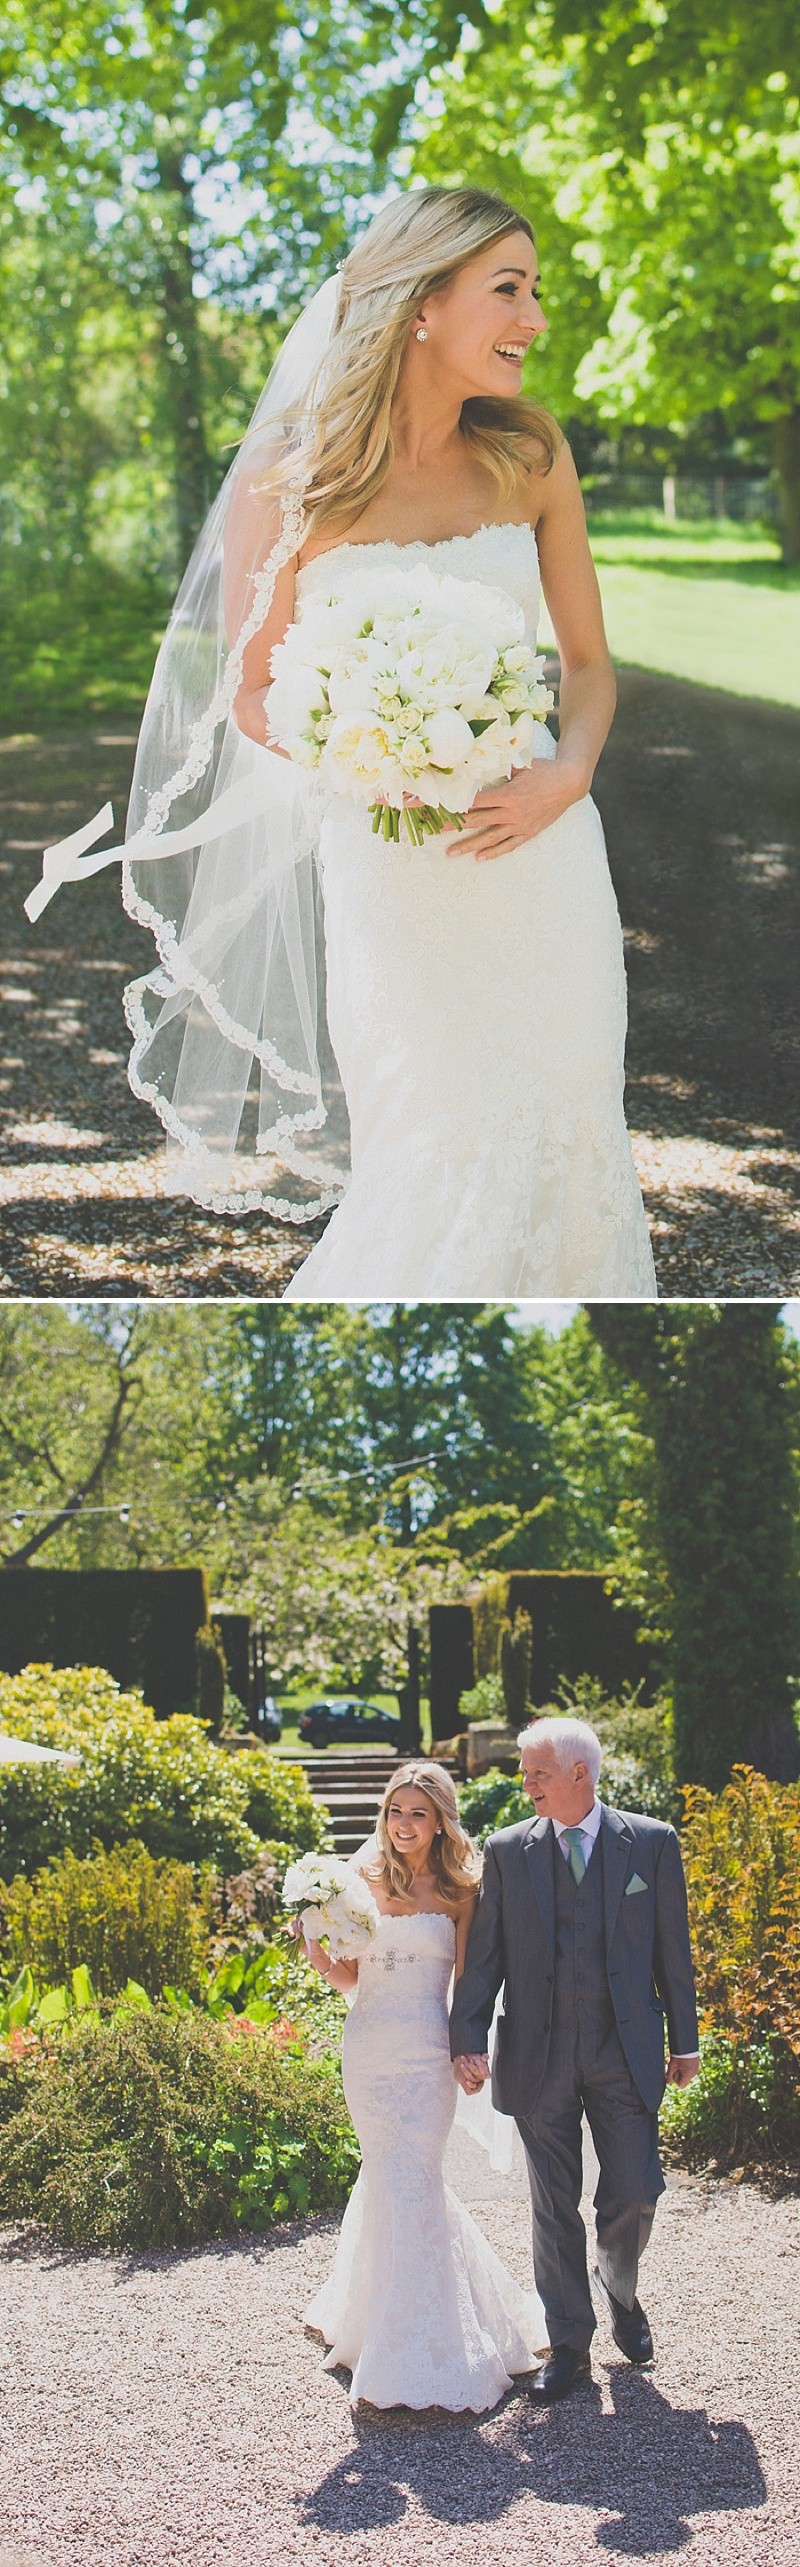 An Elegant White Themed Wedding At The Ness Botanic Gardens With Bride In Champagne From Blue By Enzoani With Aldo Corinne Shoes Images By Rivington Photography 0020 If You Could Bottle That Feeling.